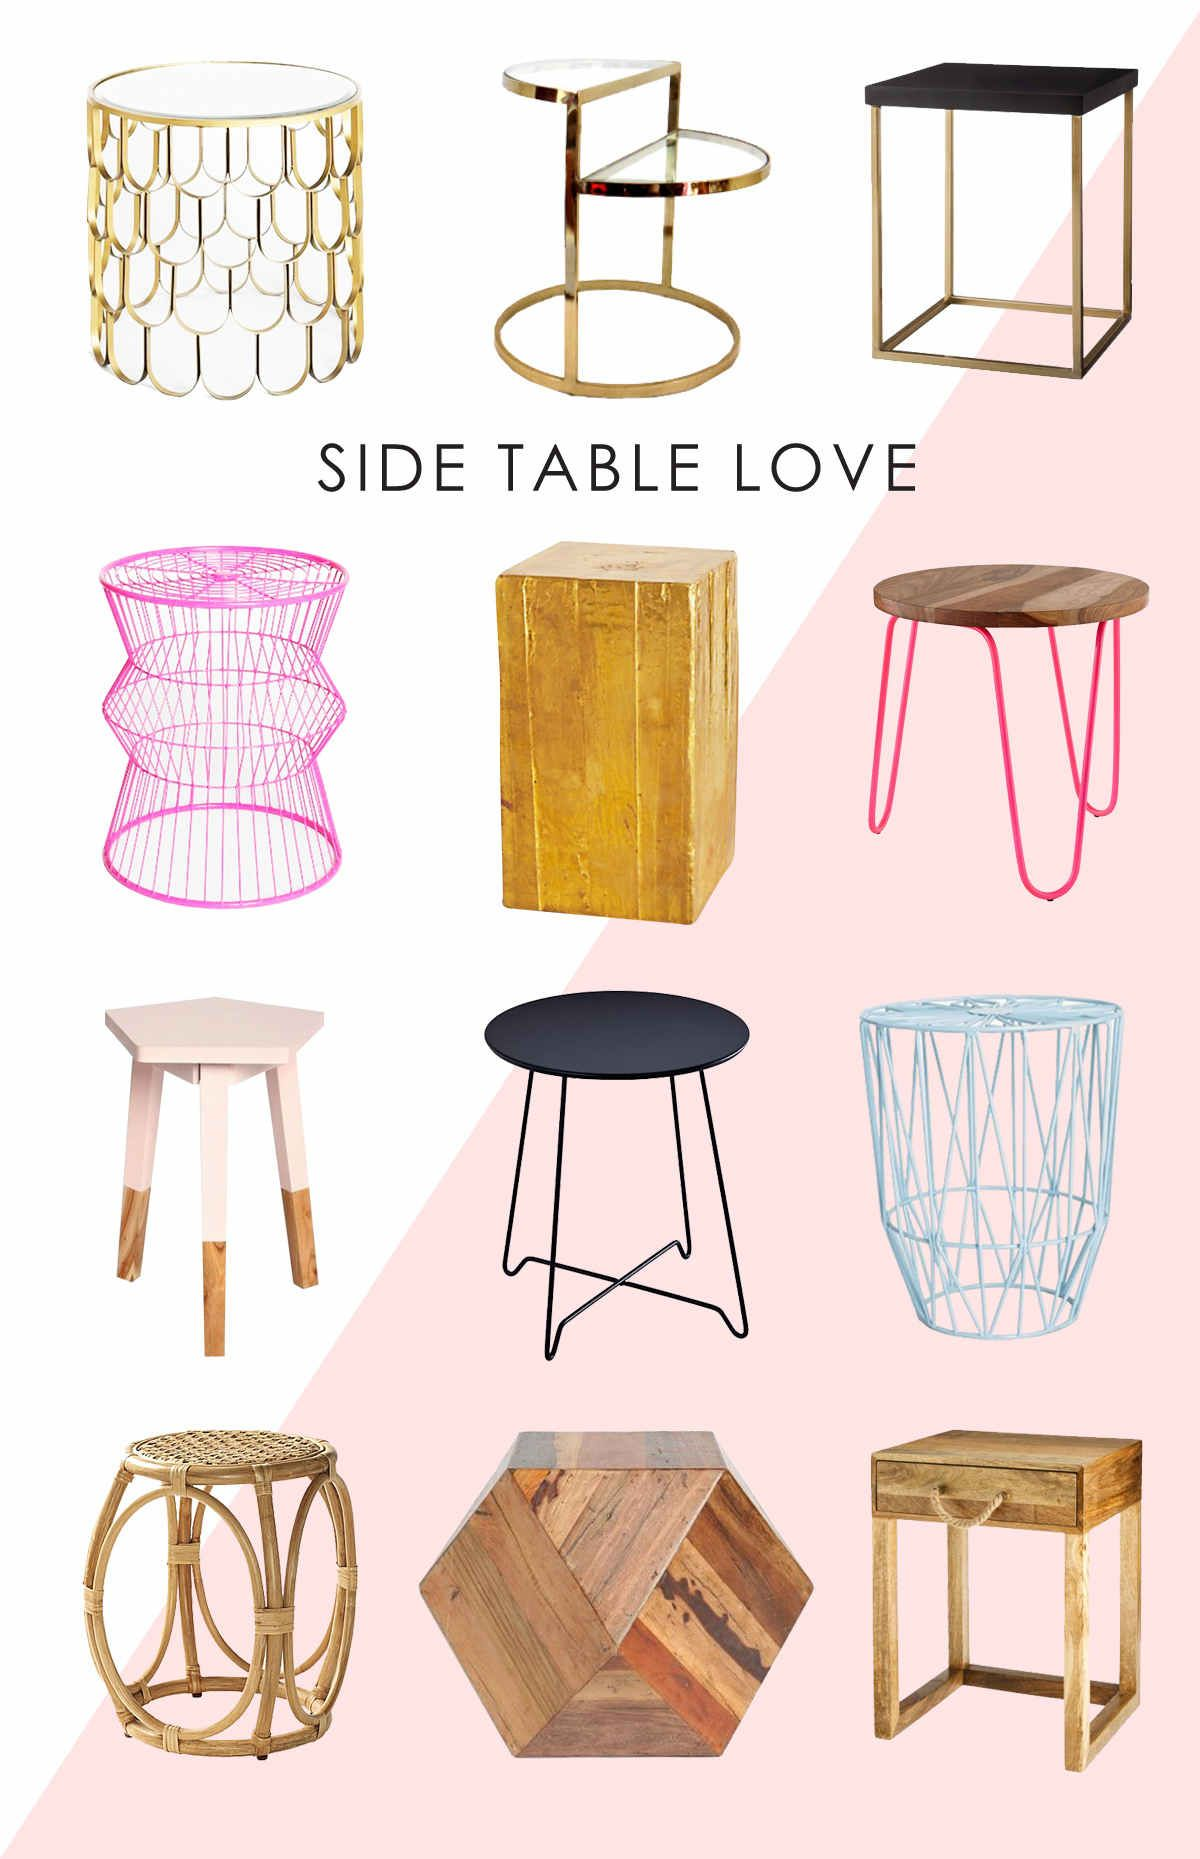 Check Out Yesterdayu0027s Post On BHG Style Spotters For A Roundup Of Some  Really Cute Side Tables. Pairing Your Rocker Or Glider With A Side T.